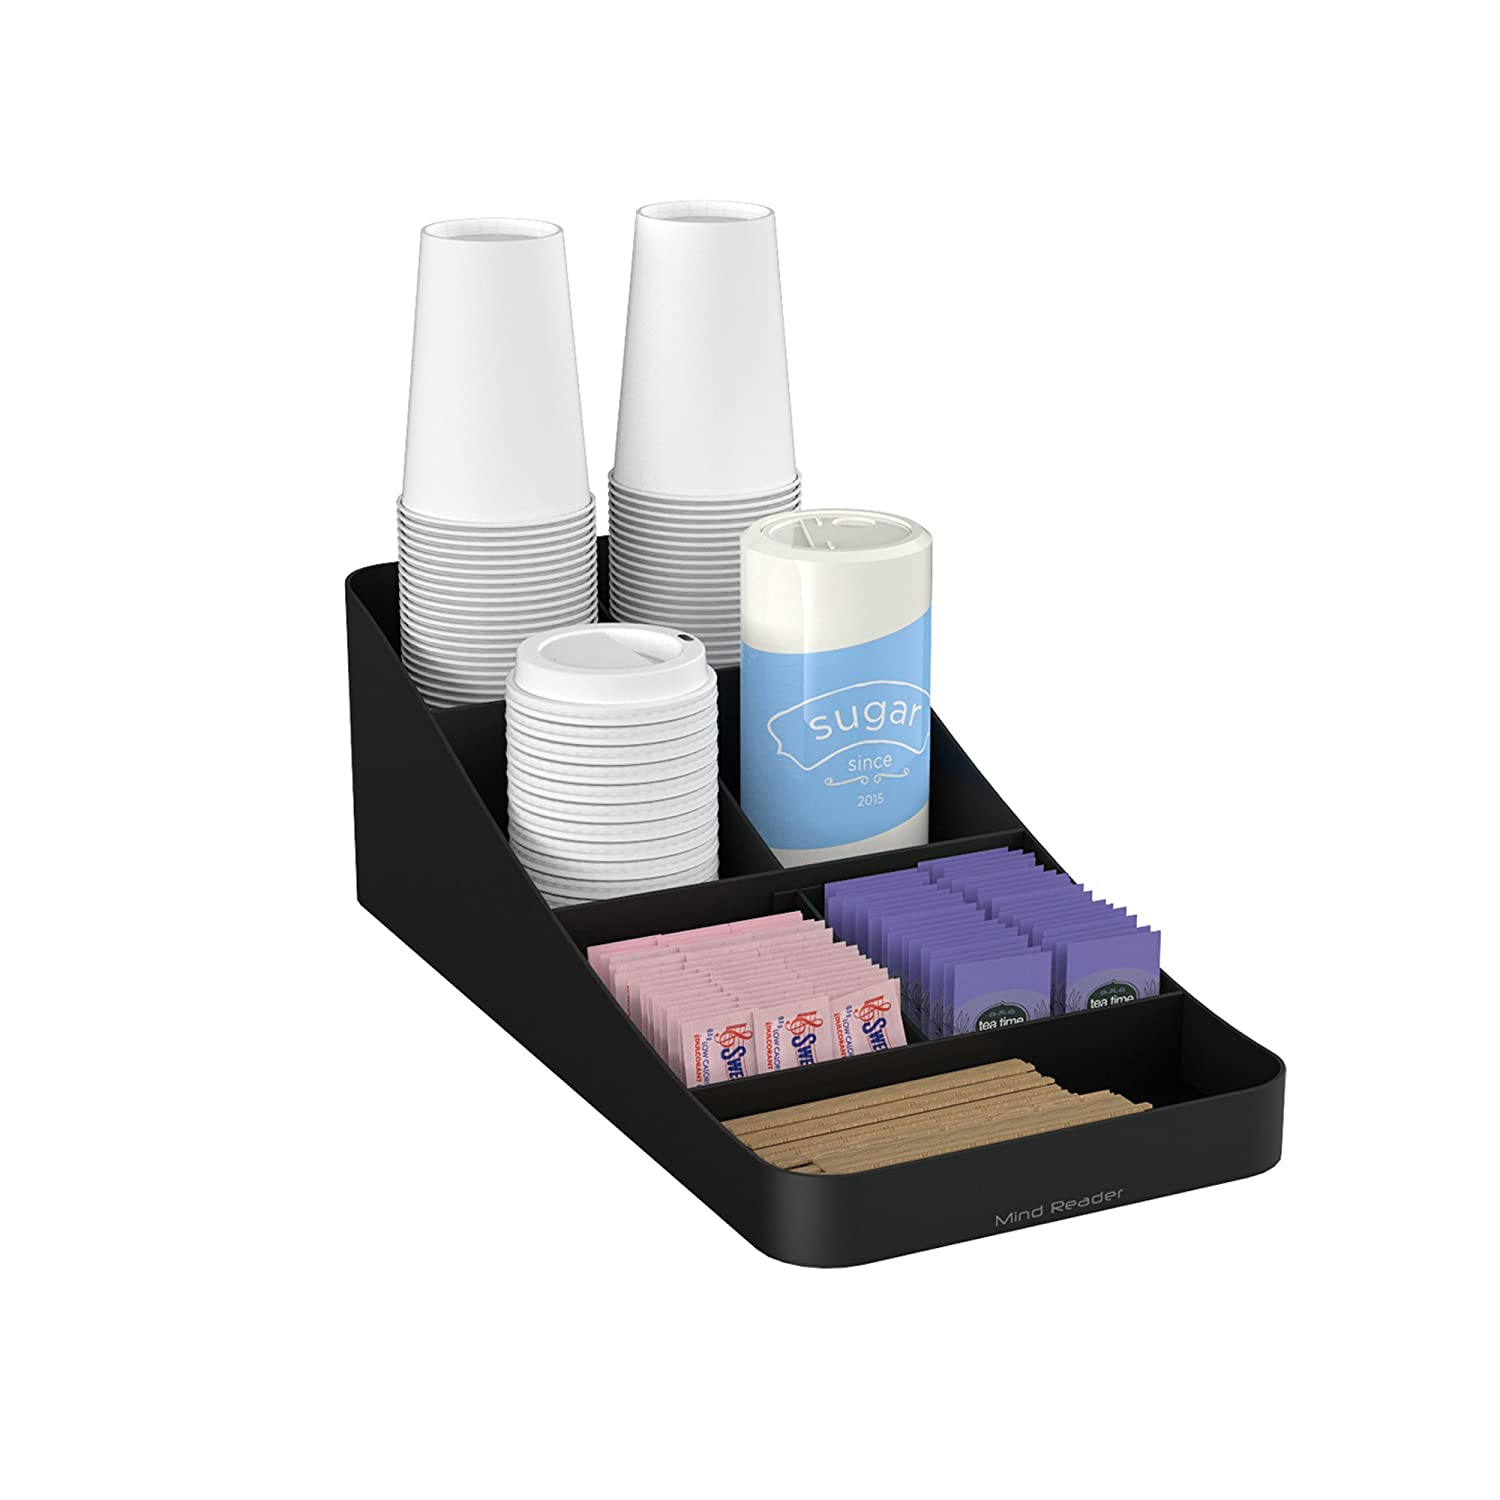 Mind Reader COMP7-BLK 7 Compartment Coffee Condiment, Cups, Lids, Sugars, and Stirrers,Storage Organizer, Black